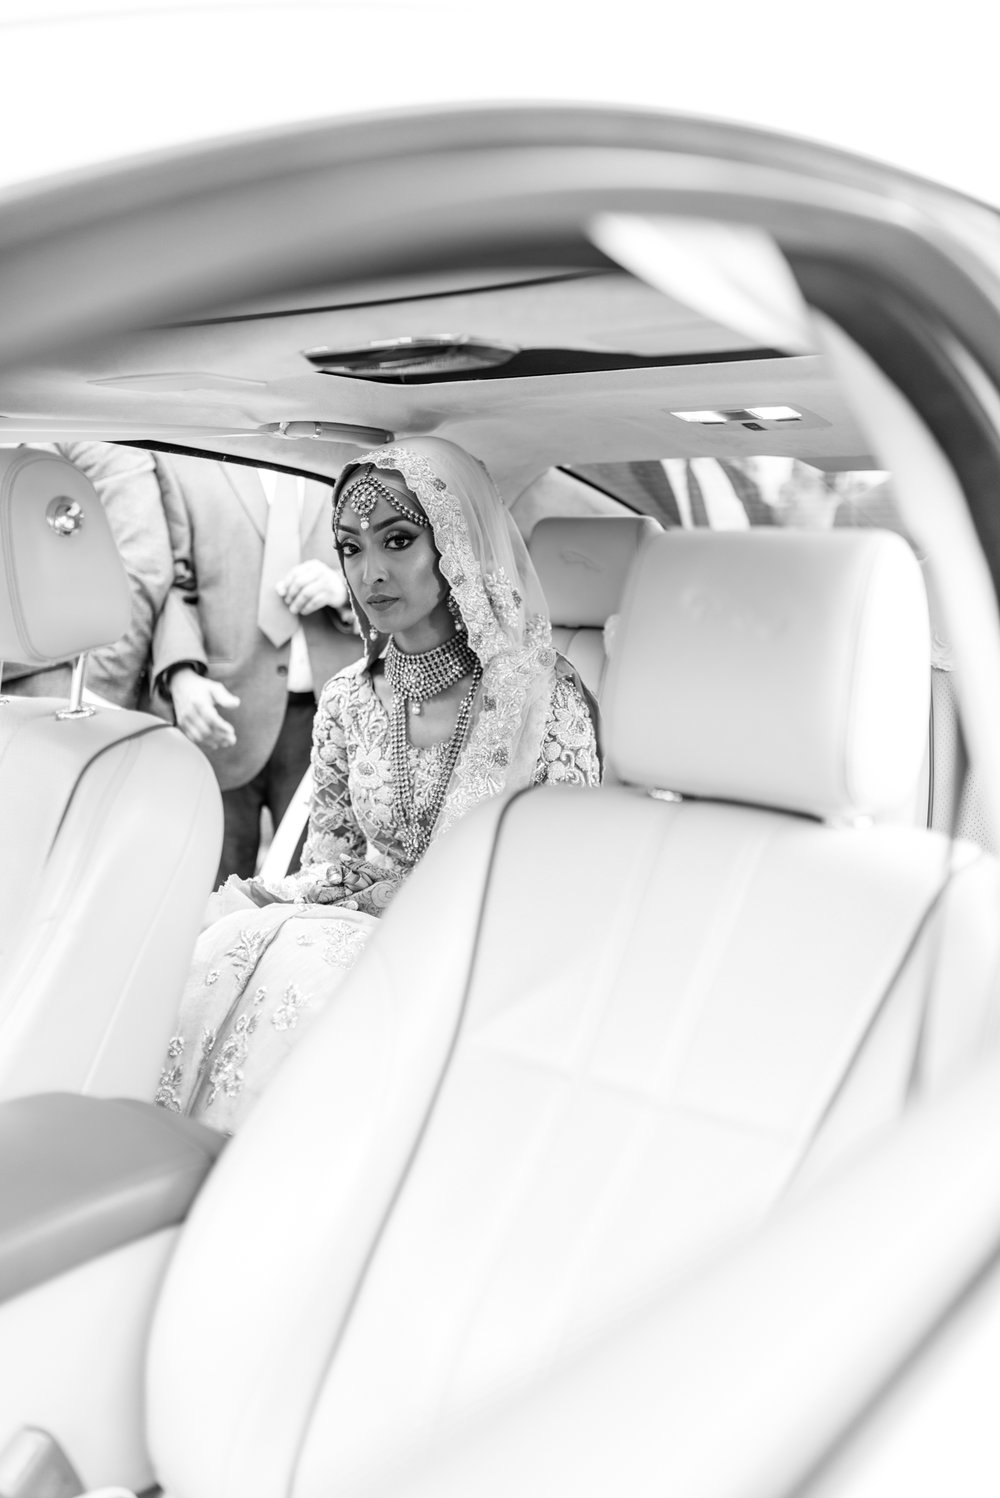 the bride sits in the car before the groom joins her to depart for their new life